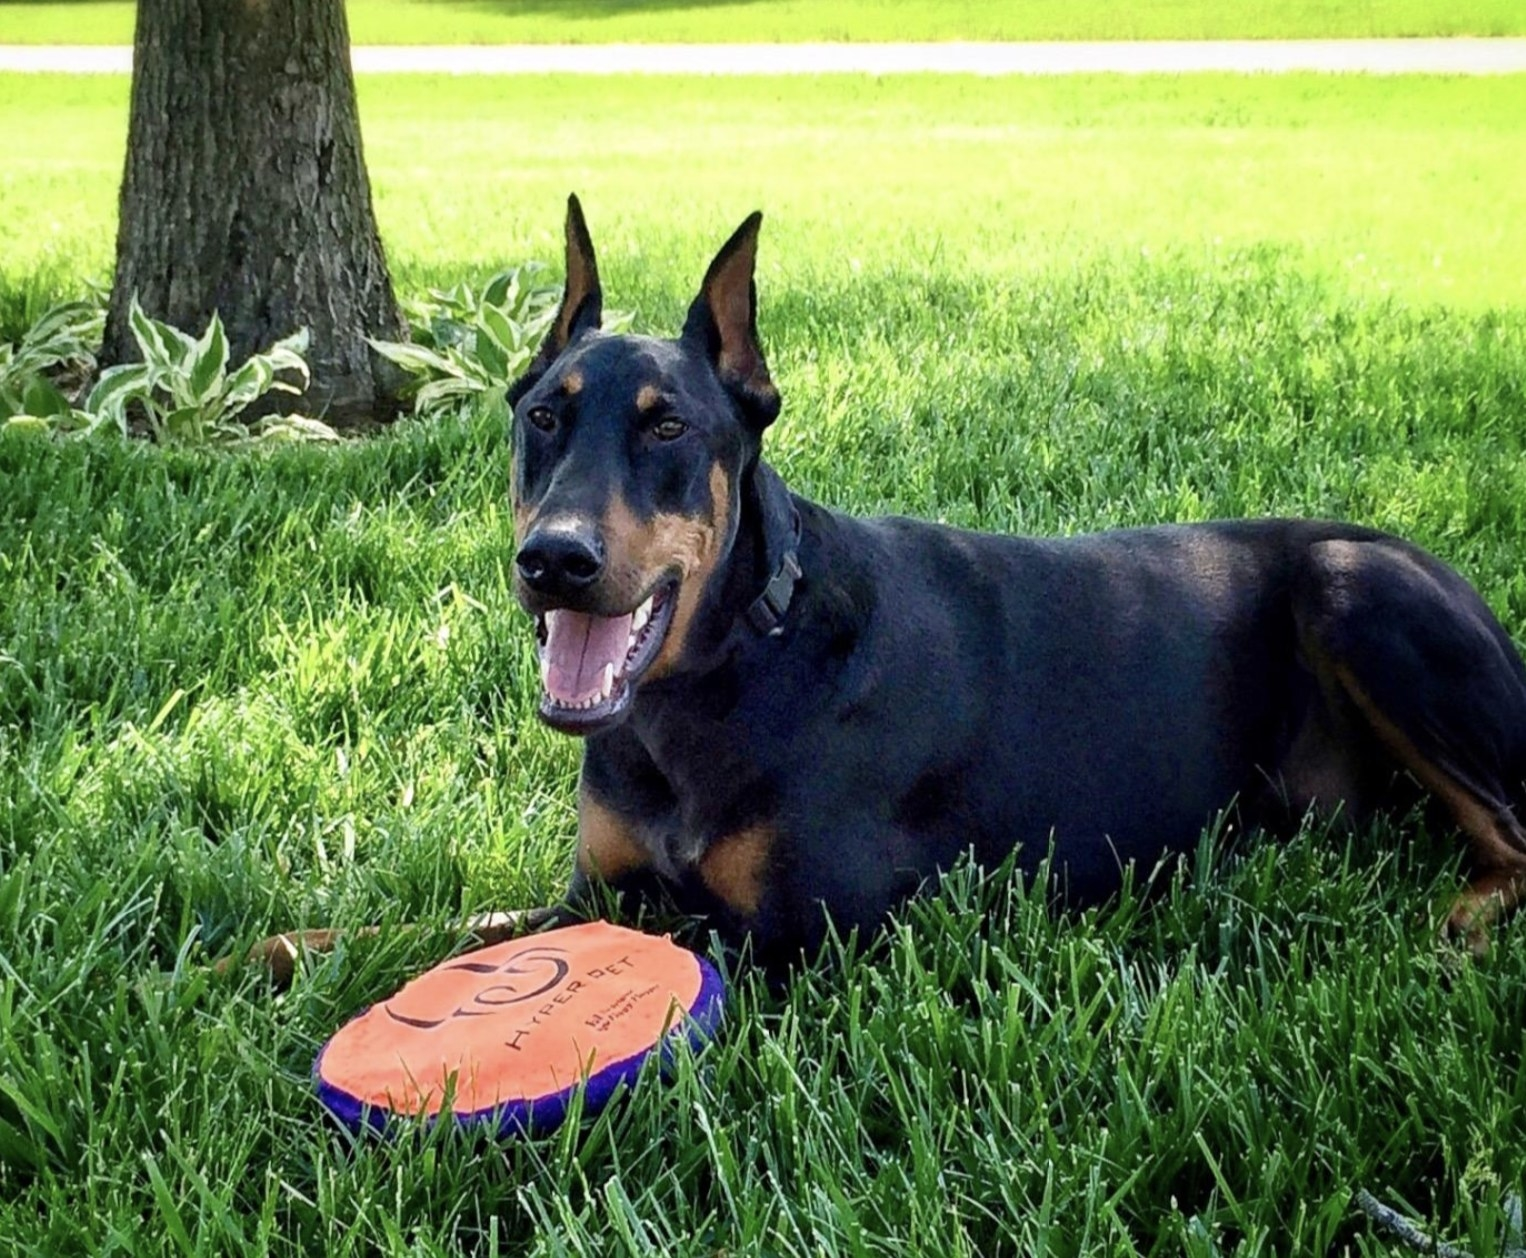 a black and brown dog sitting in grass with an orange frisbee in front of them